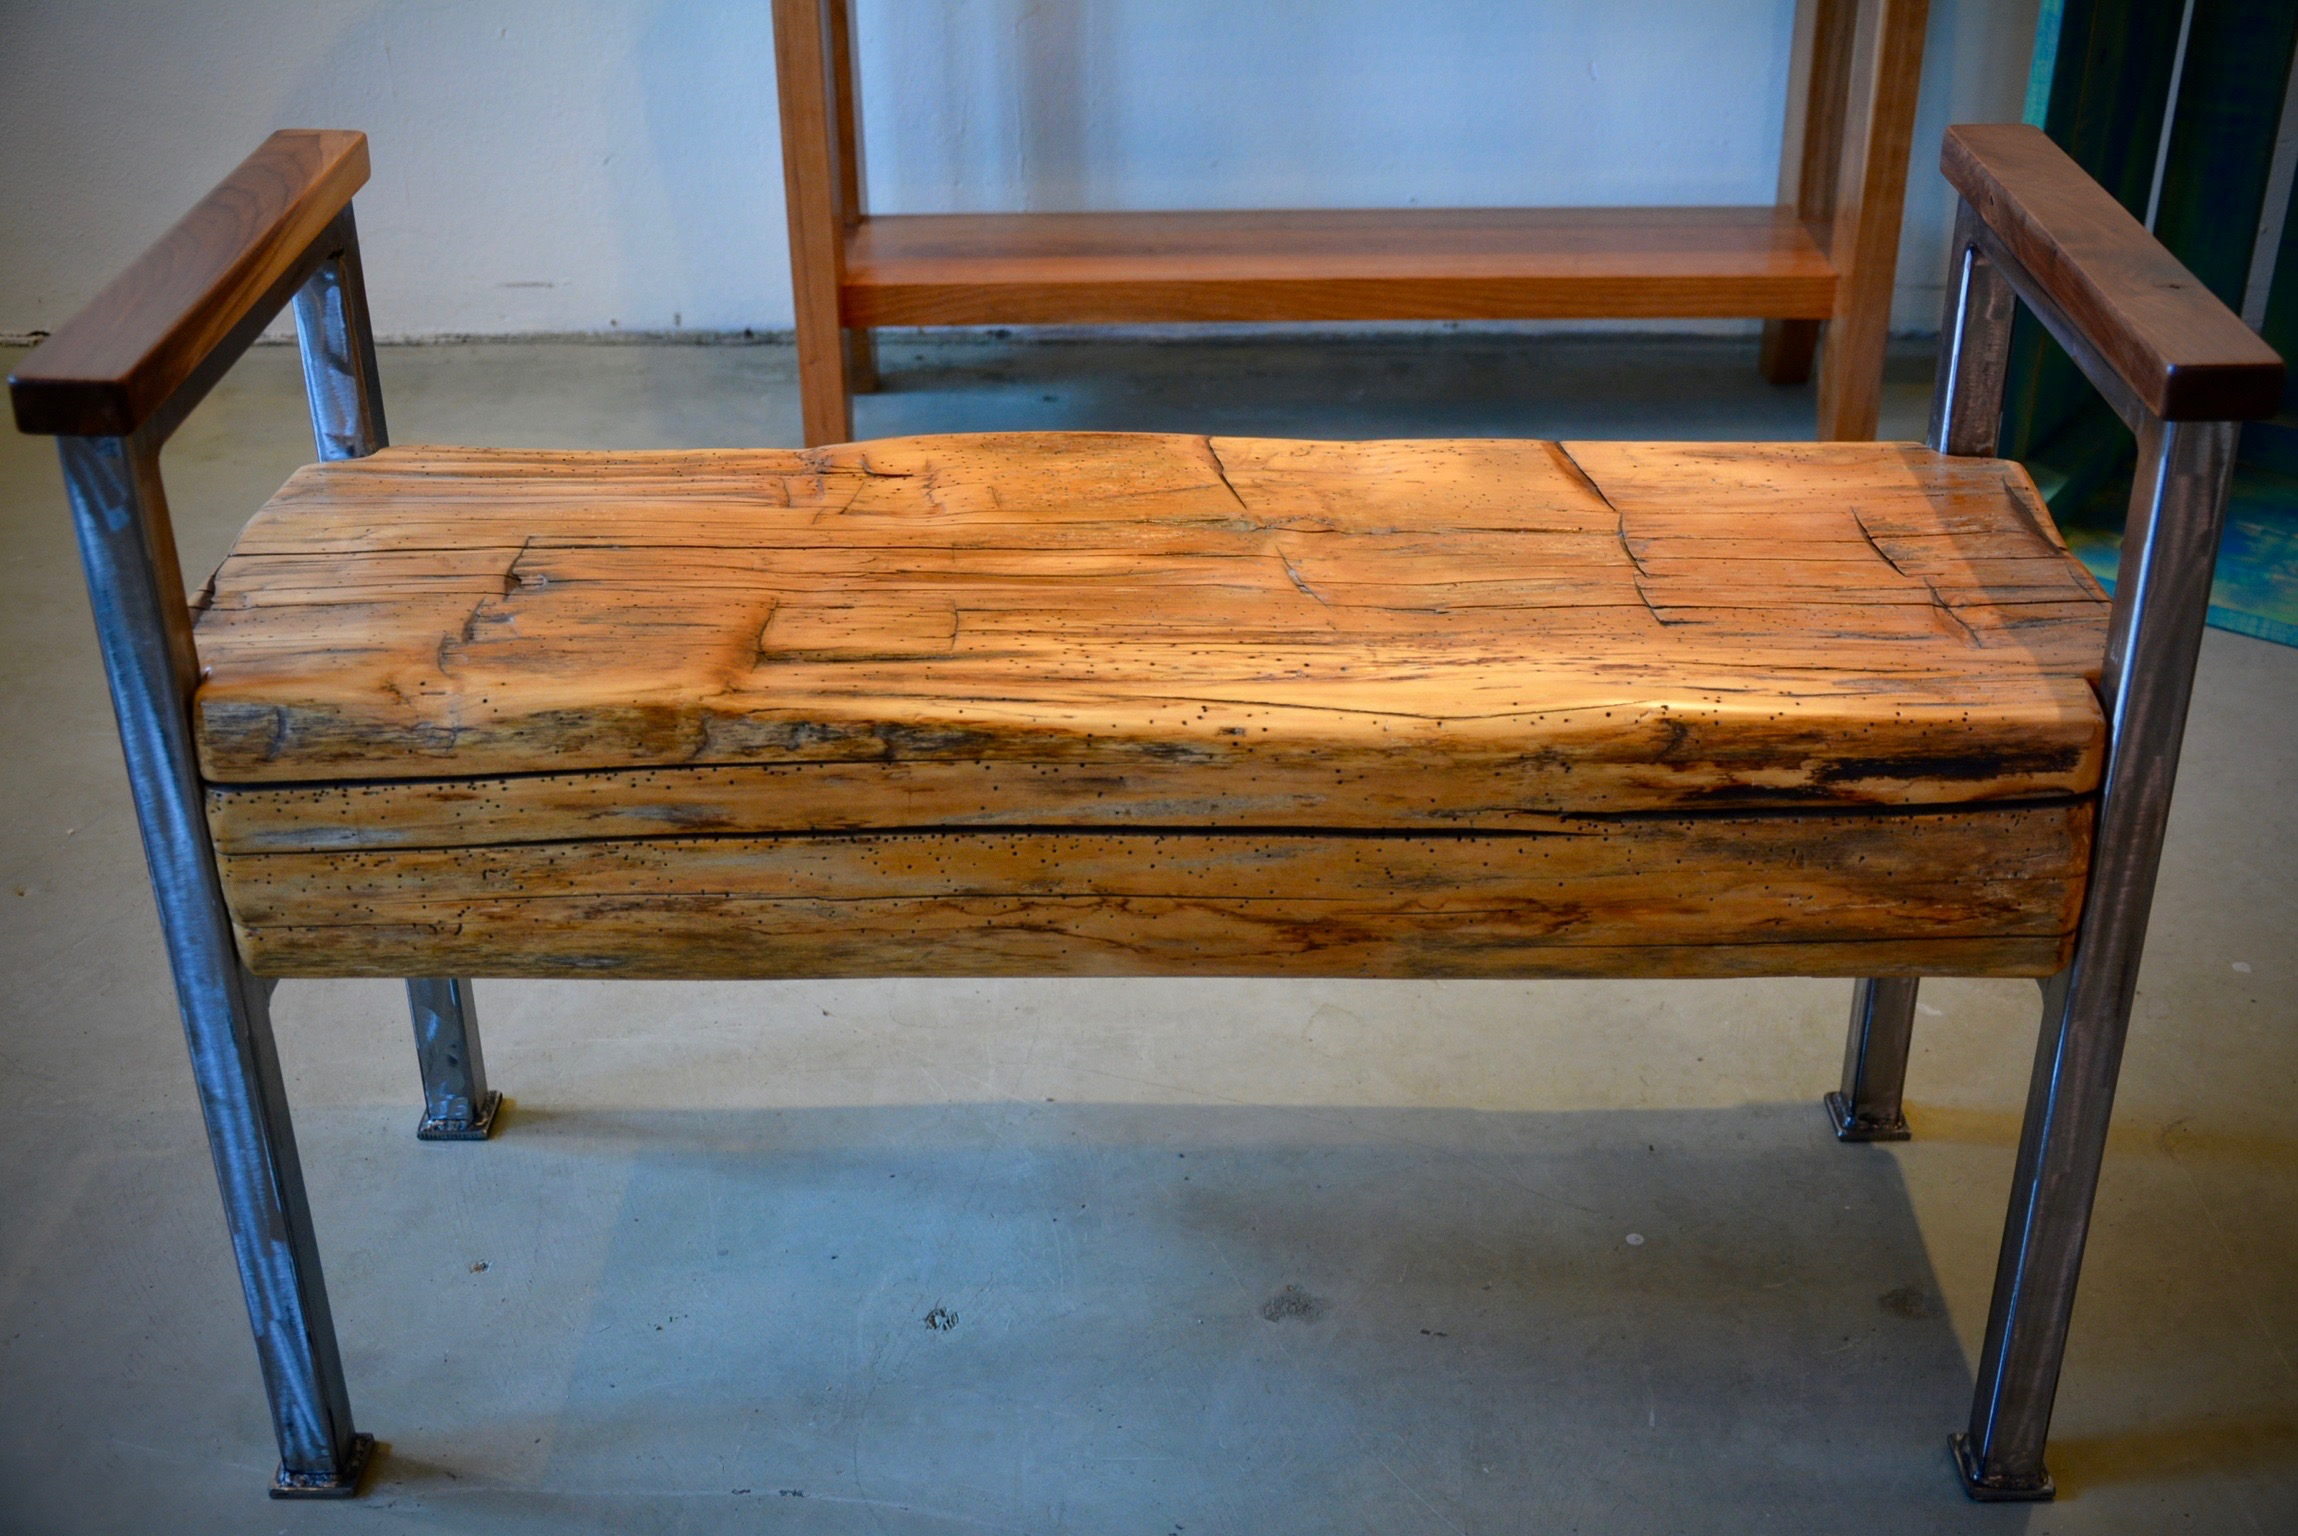 Phenomenal Barn Beam Bench With Arms Ibusinesslaw Wood Chair Design Ideas Ibusinesslaworg